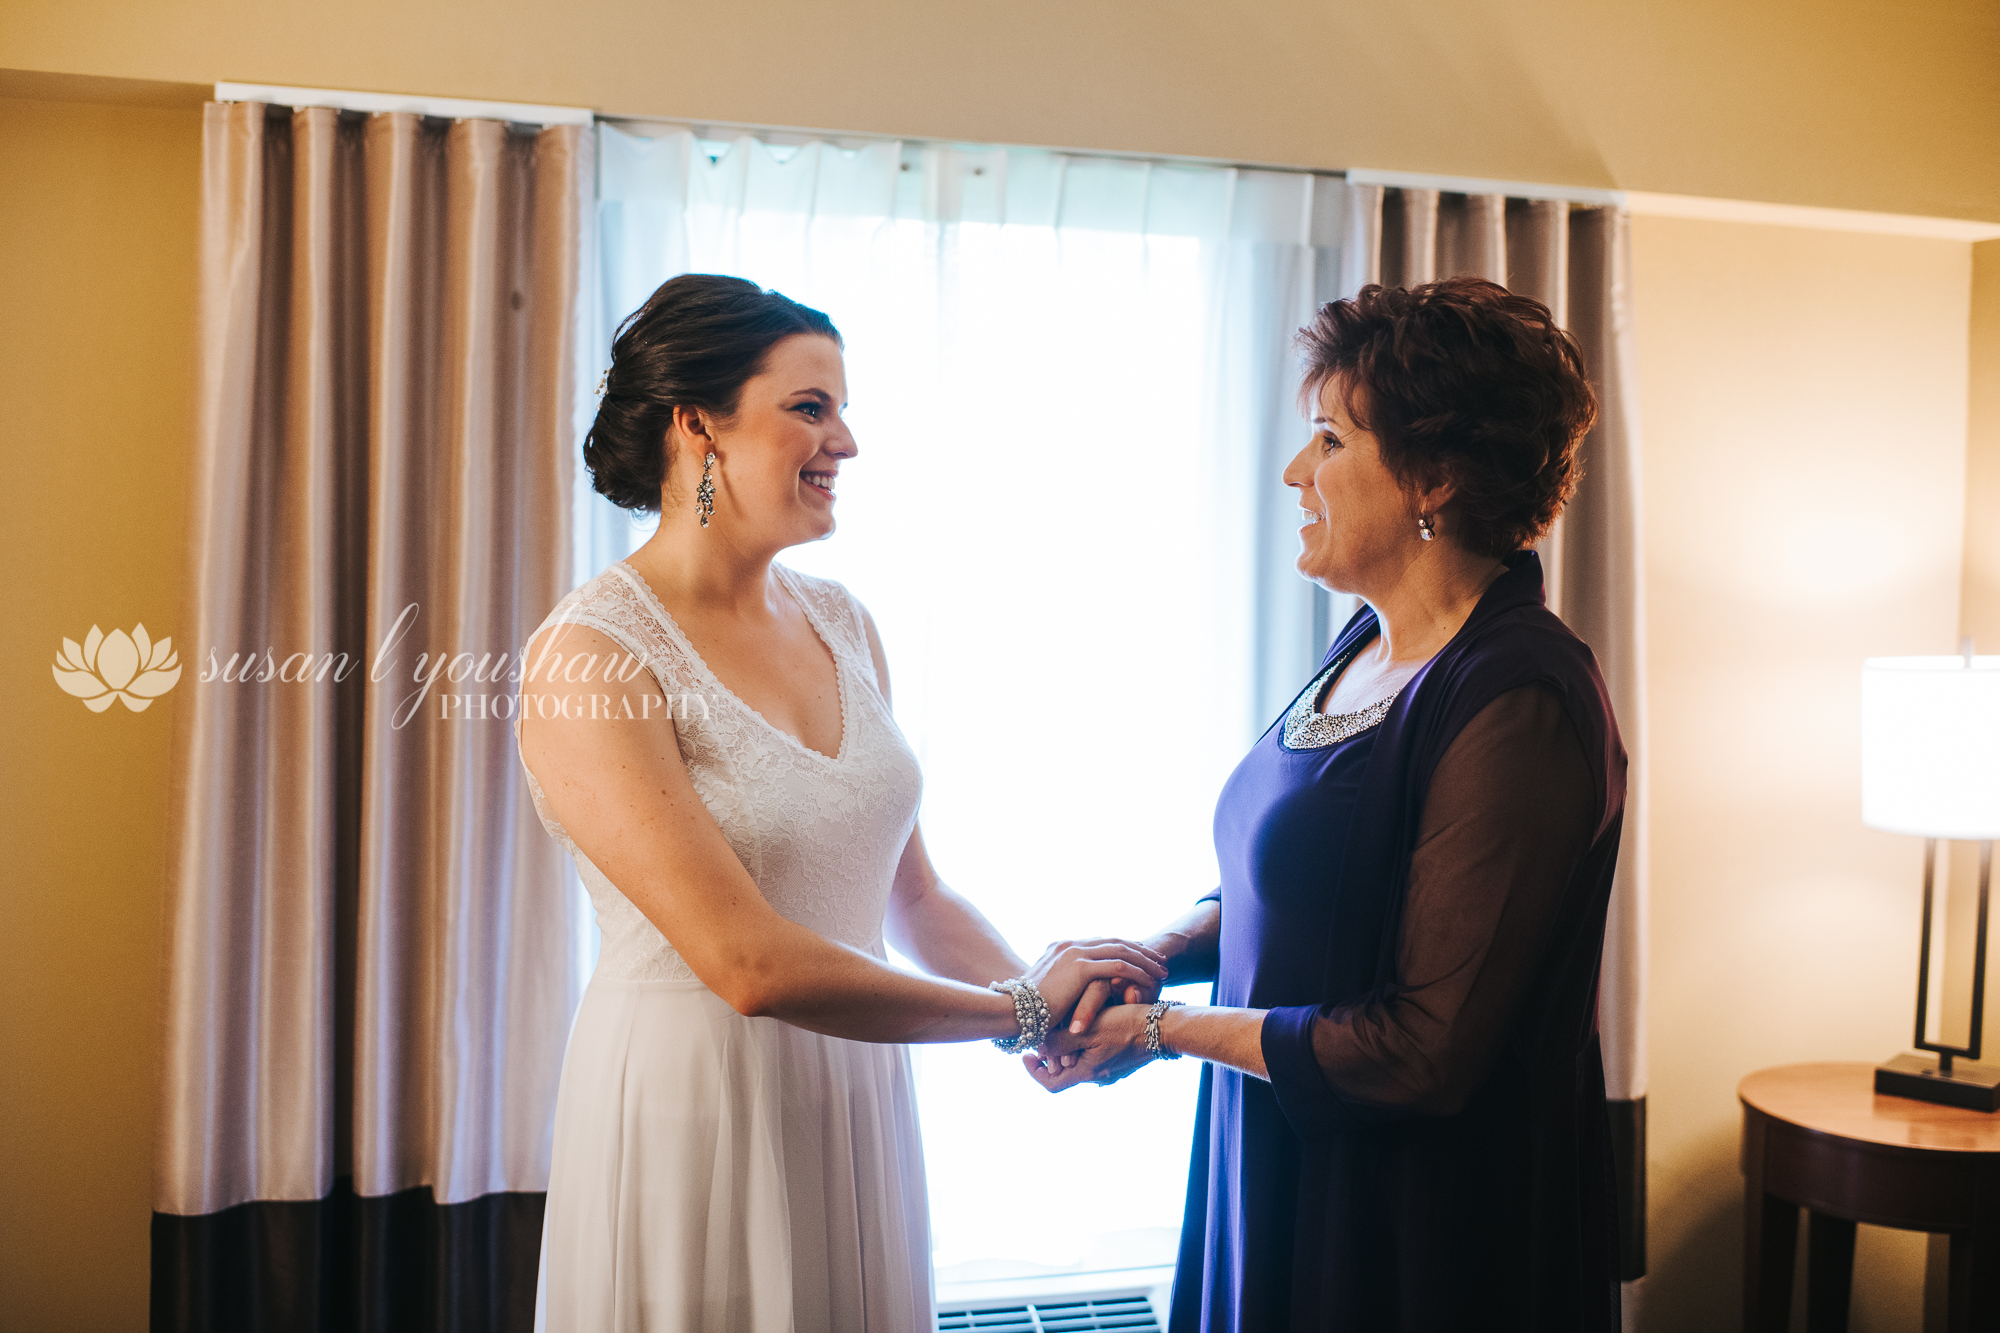 Adena and  Erik Wedding 05-17-2019 SLY Photography-9.jpg